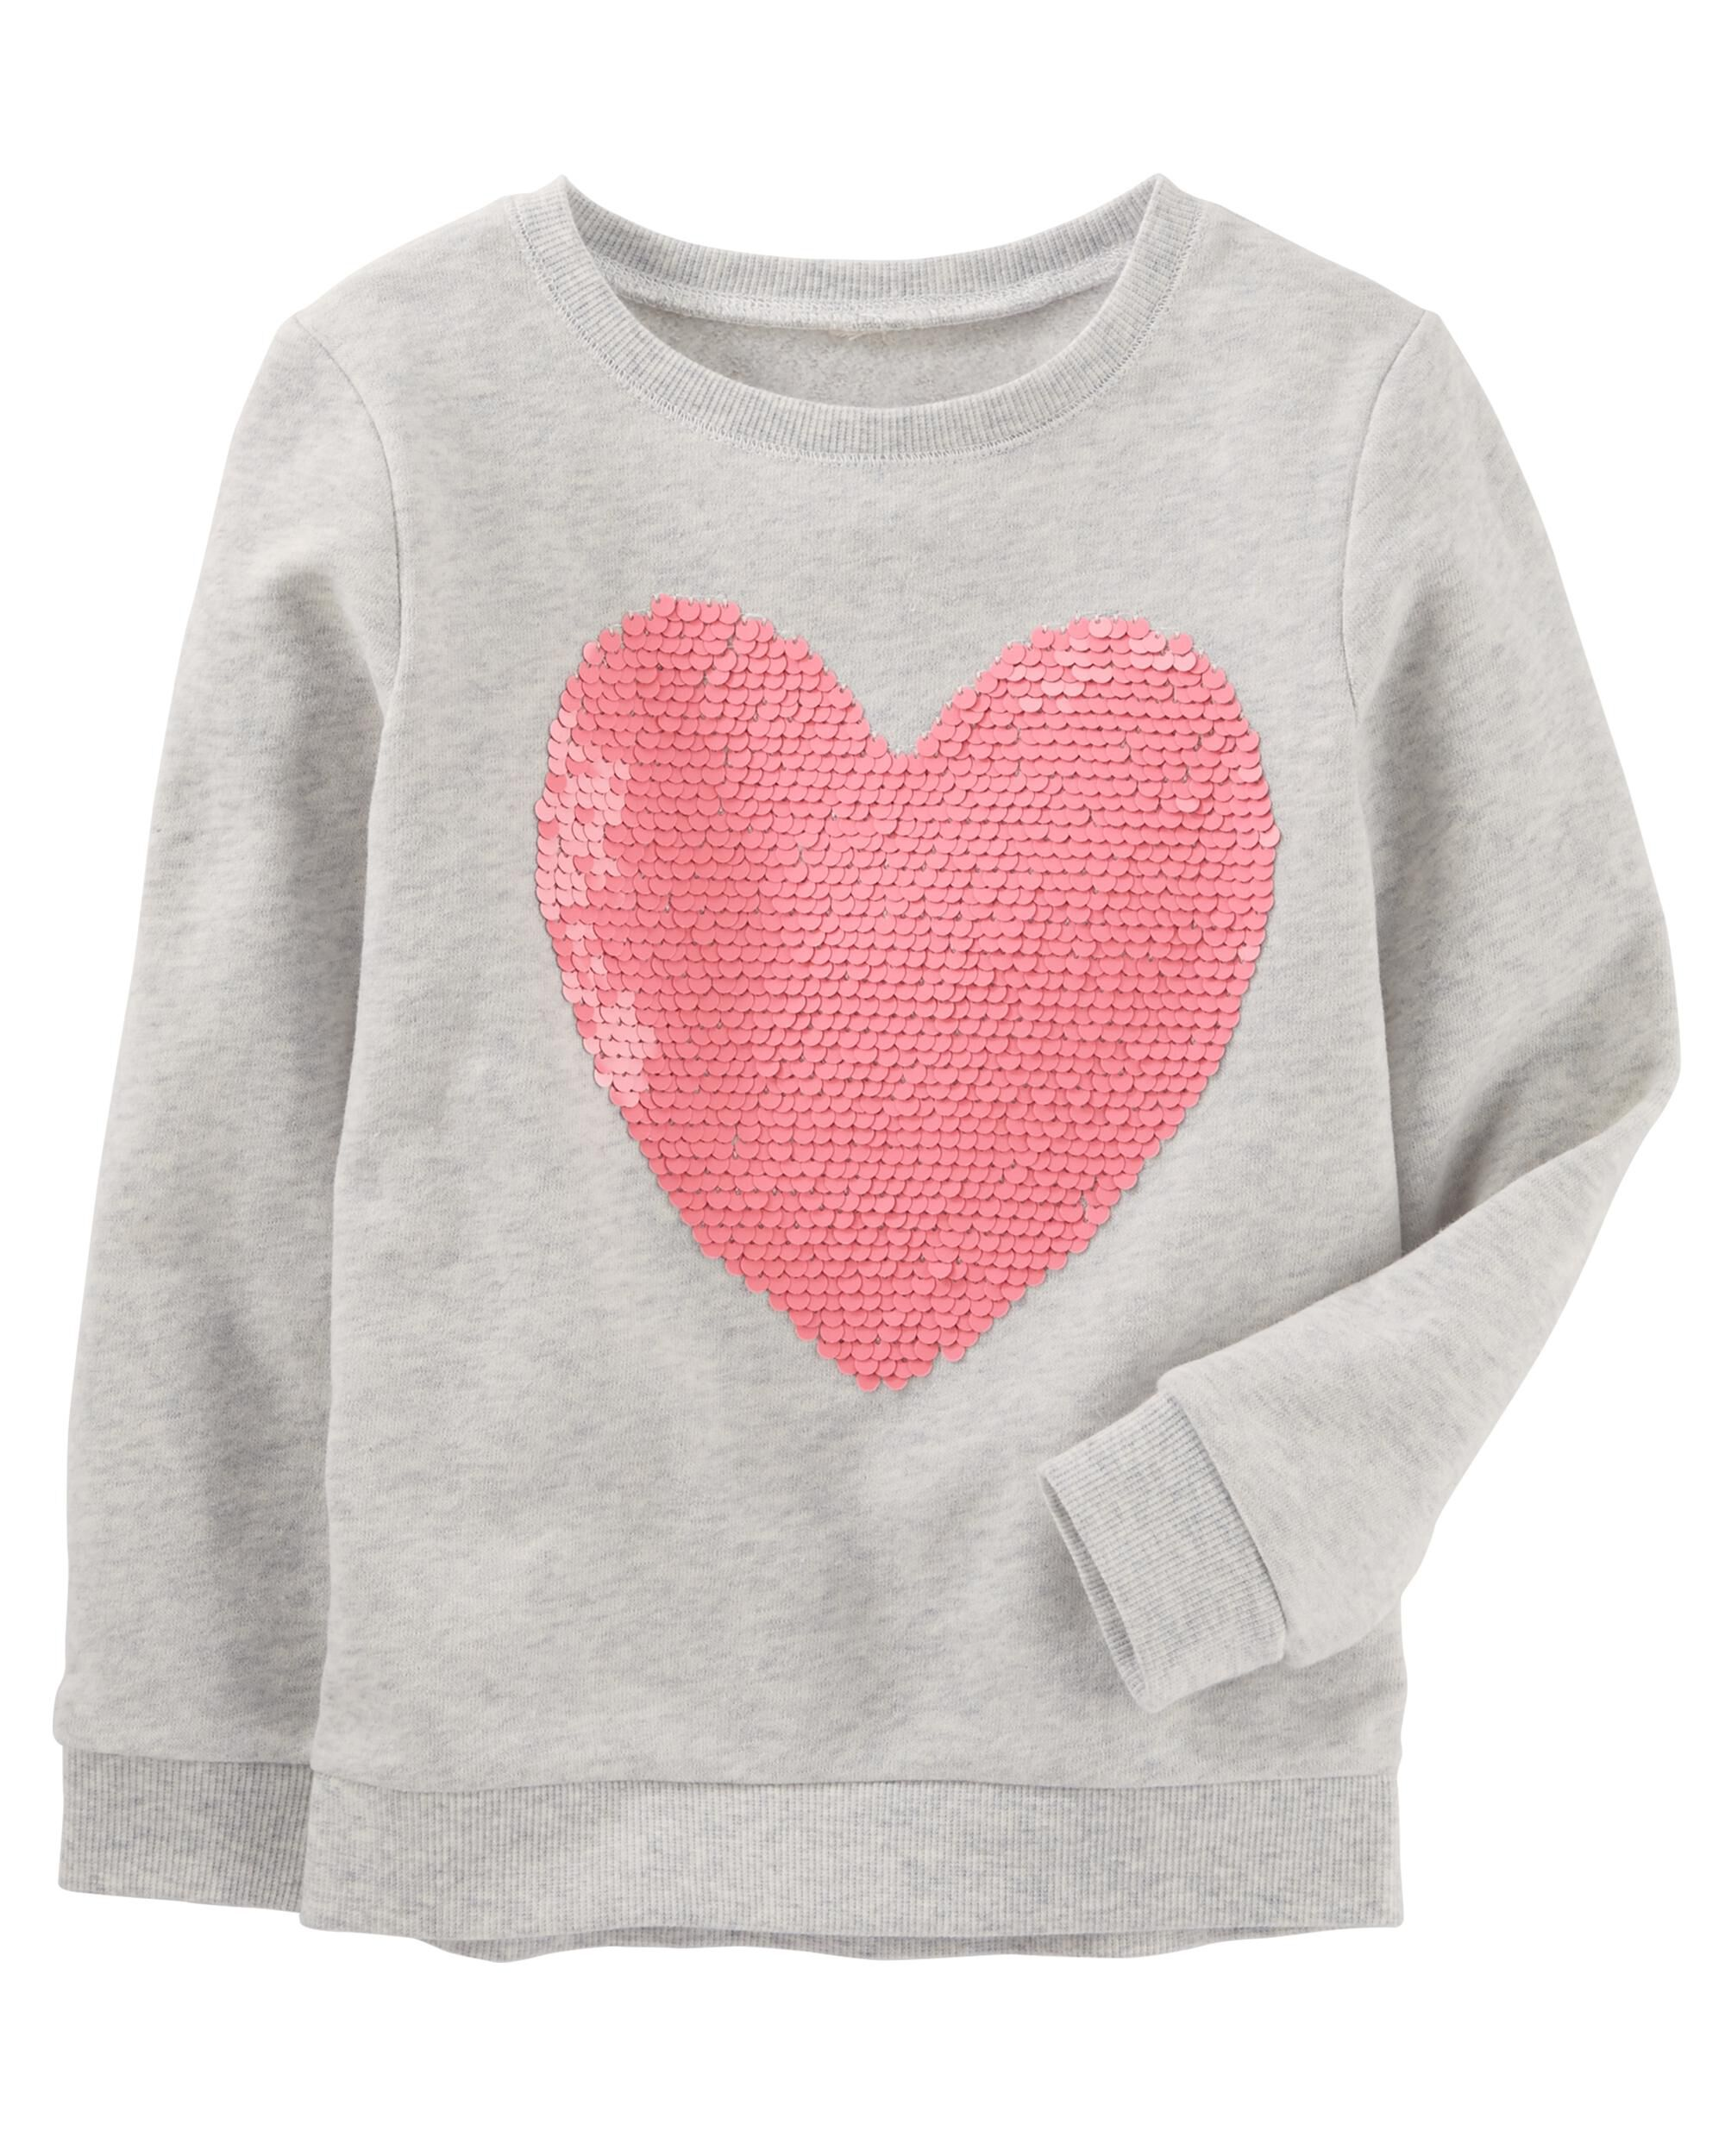 Girls Sweaters | Oshkosh | Free Shipping